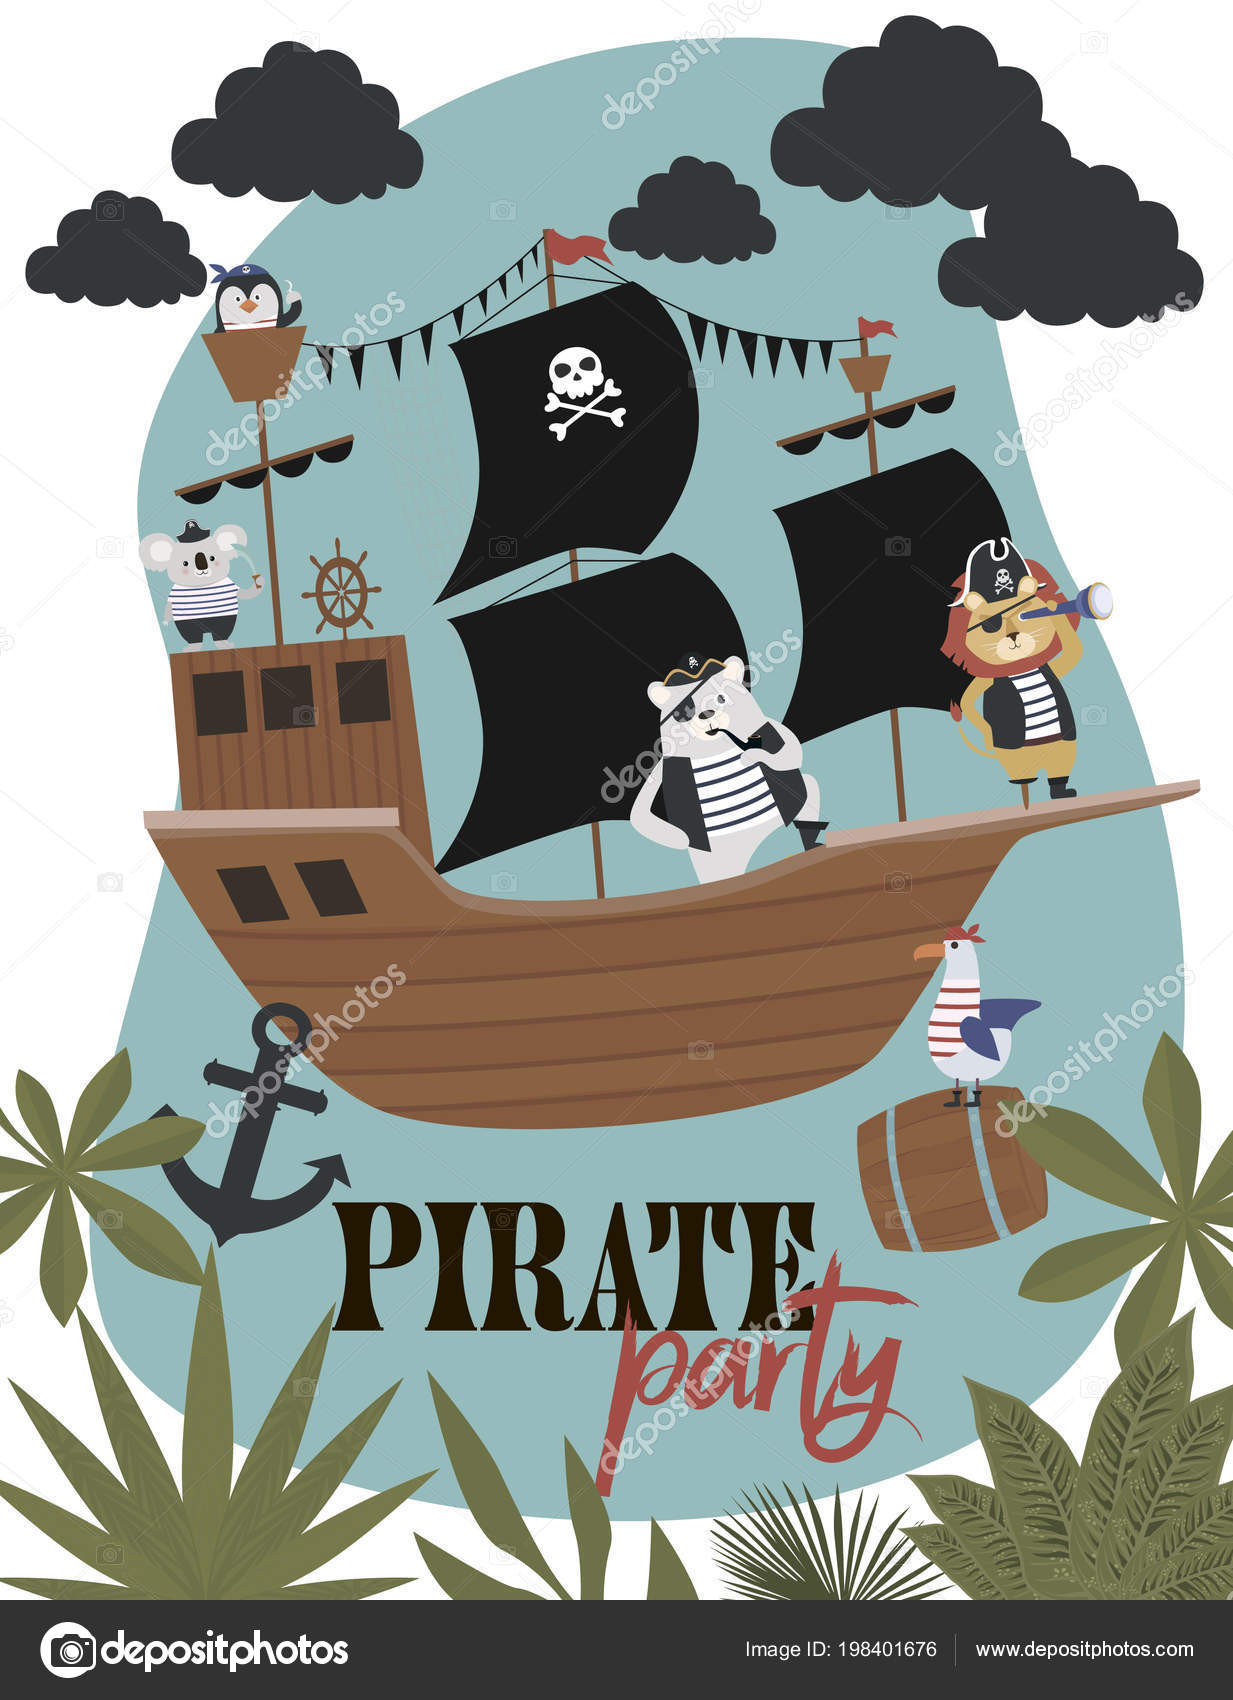 Pirate Birthday Invitation Card Cartoon Style Editable Vector Illustration Stock